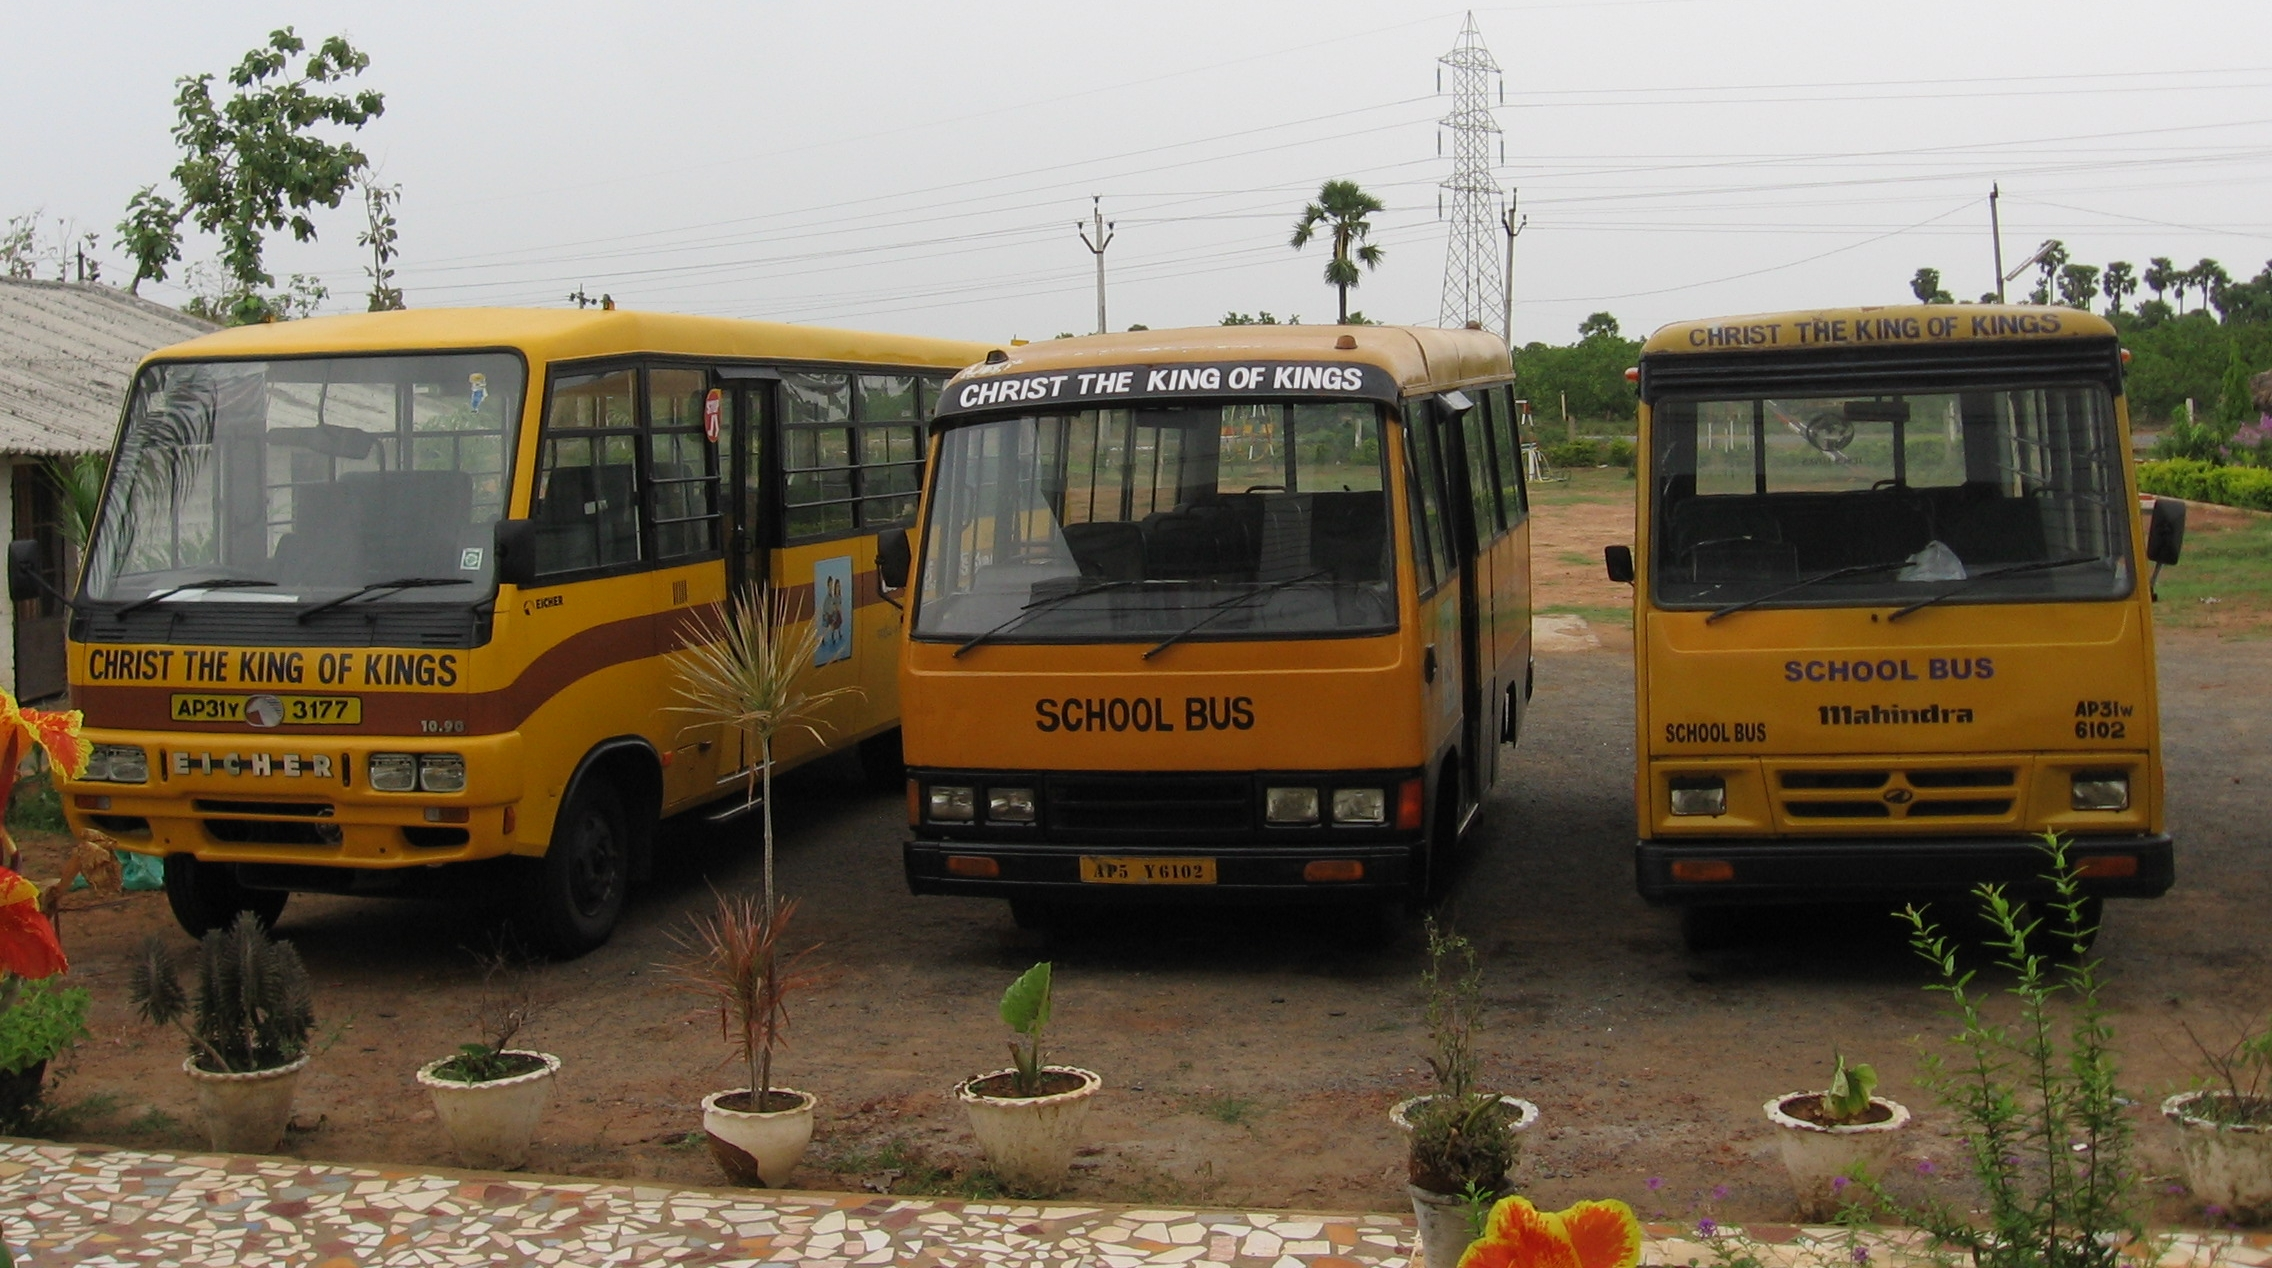 Our fleet of school buses in 2010 that go into surrounding villages to bring children to school 11 months a year